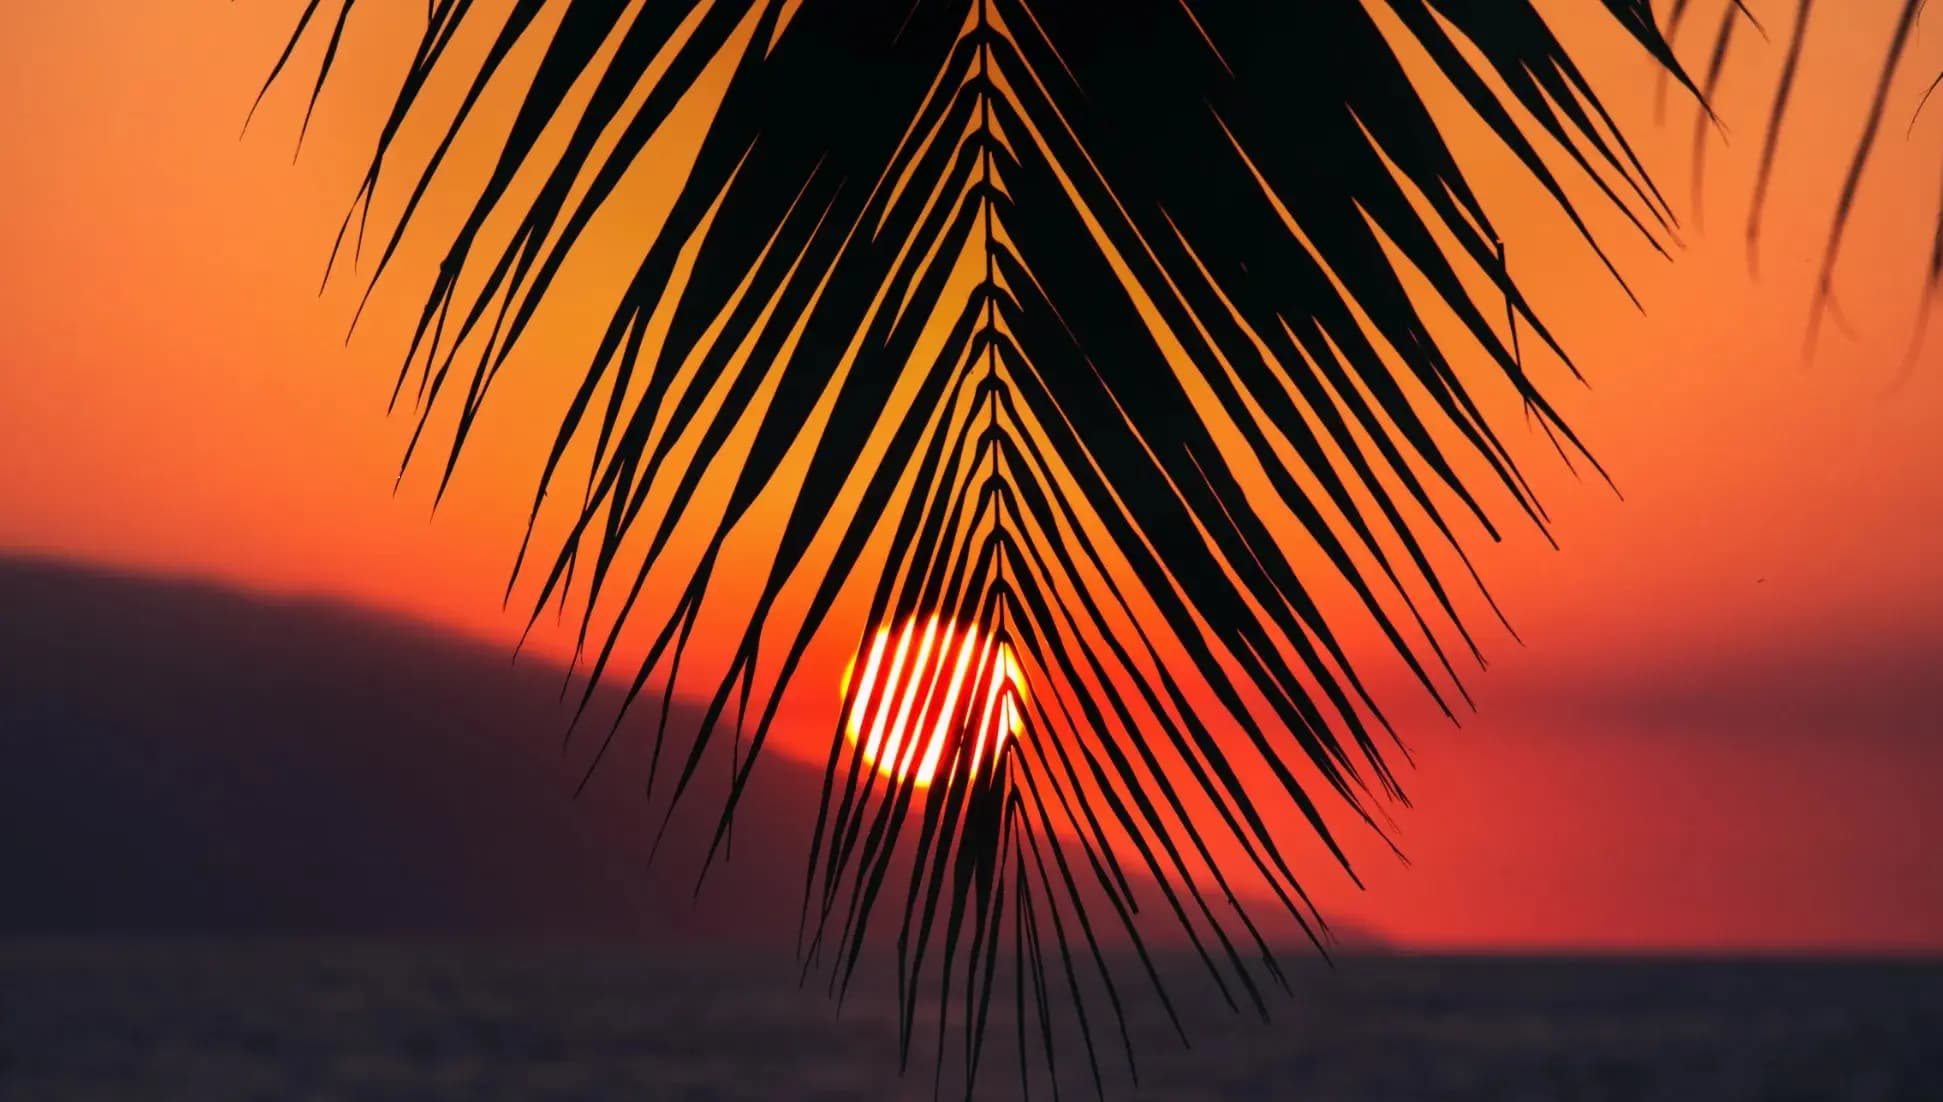 The sun sets behind a mountain with a palm leaf in the foreground.